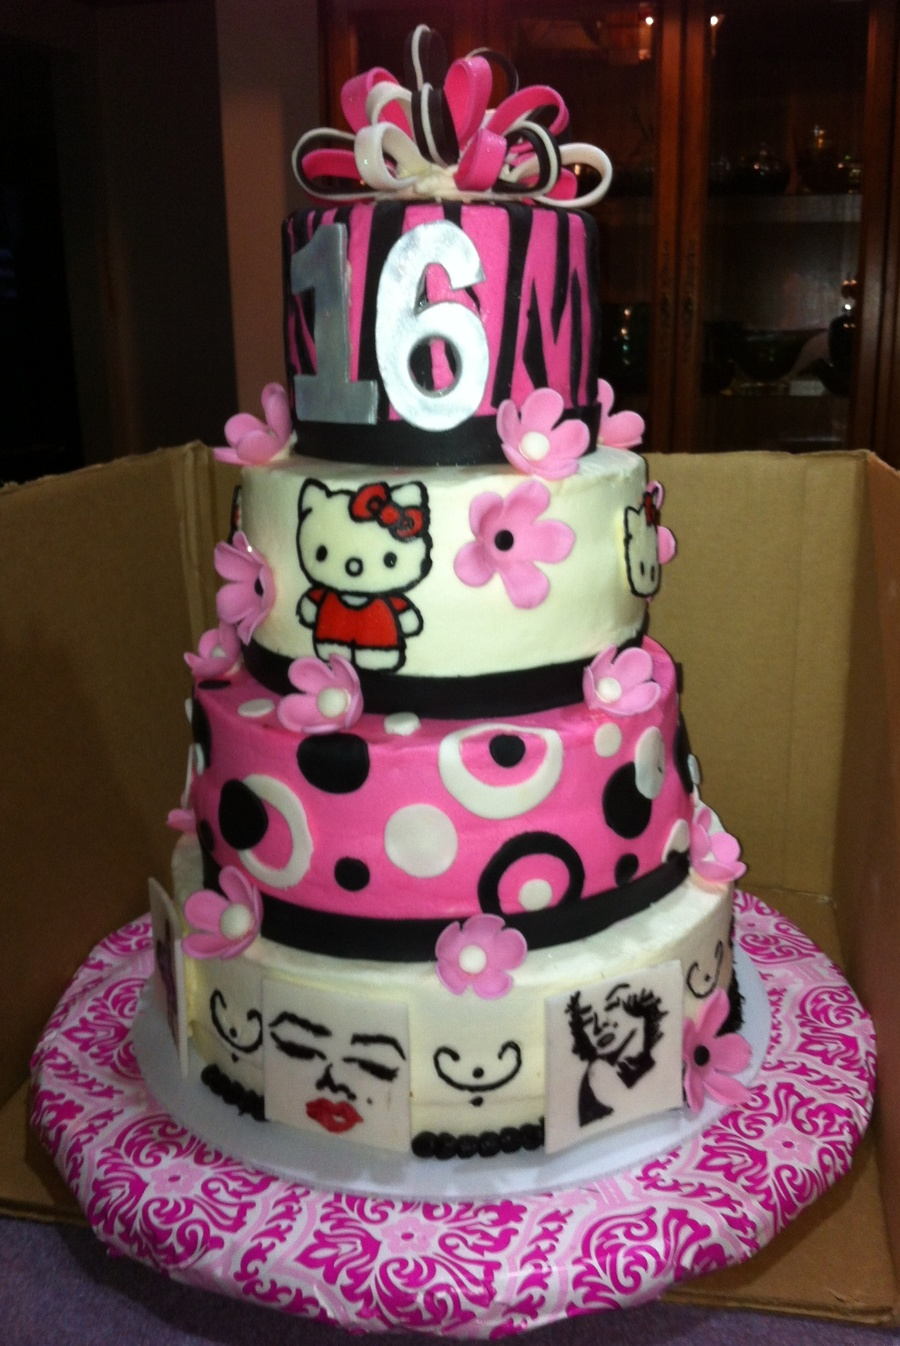 Sweet 16 With Hello Kitty And Marilyn Monroe on Cake Central